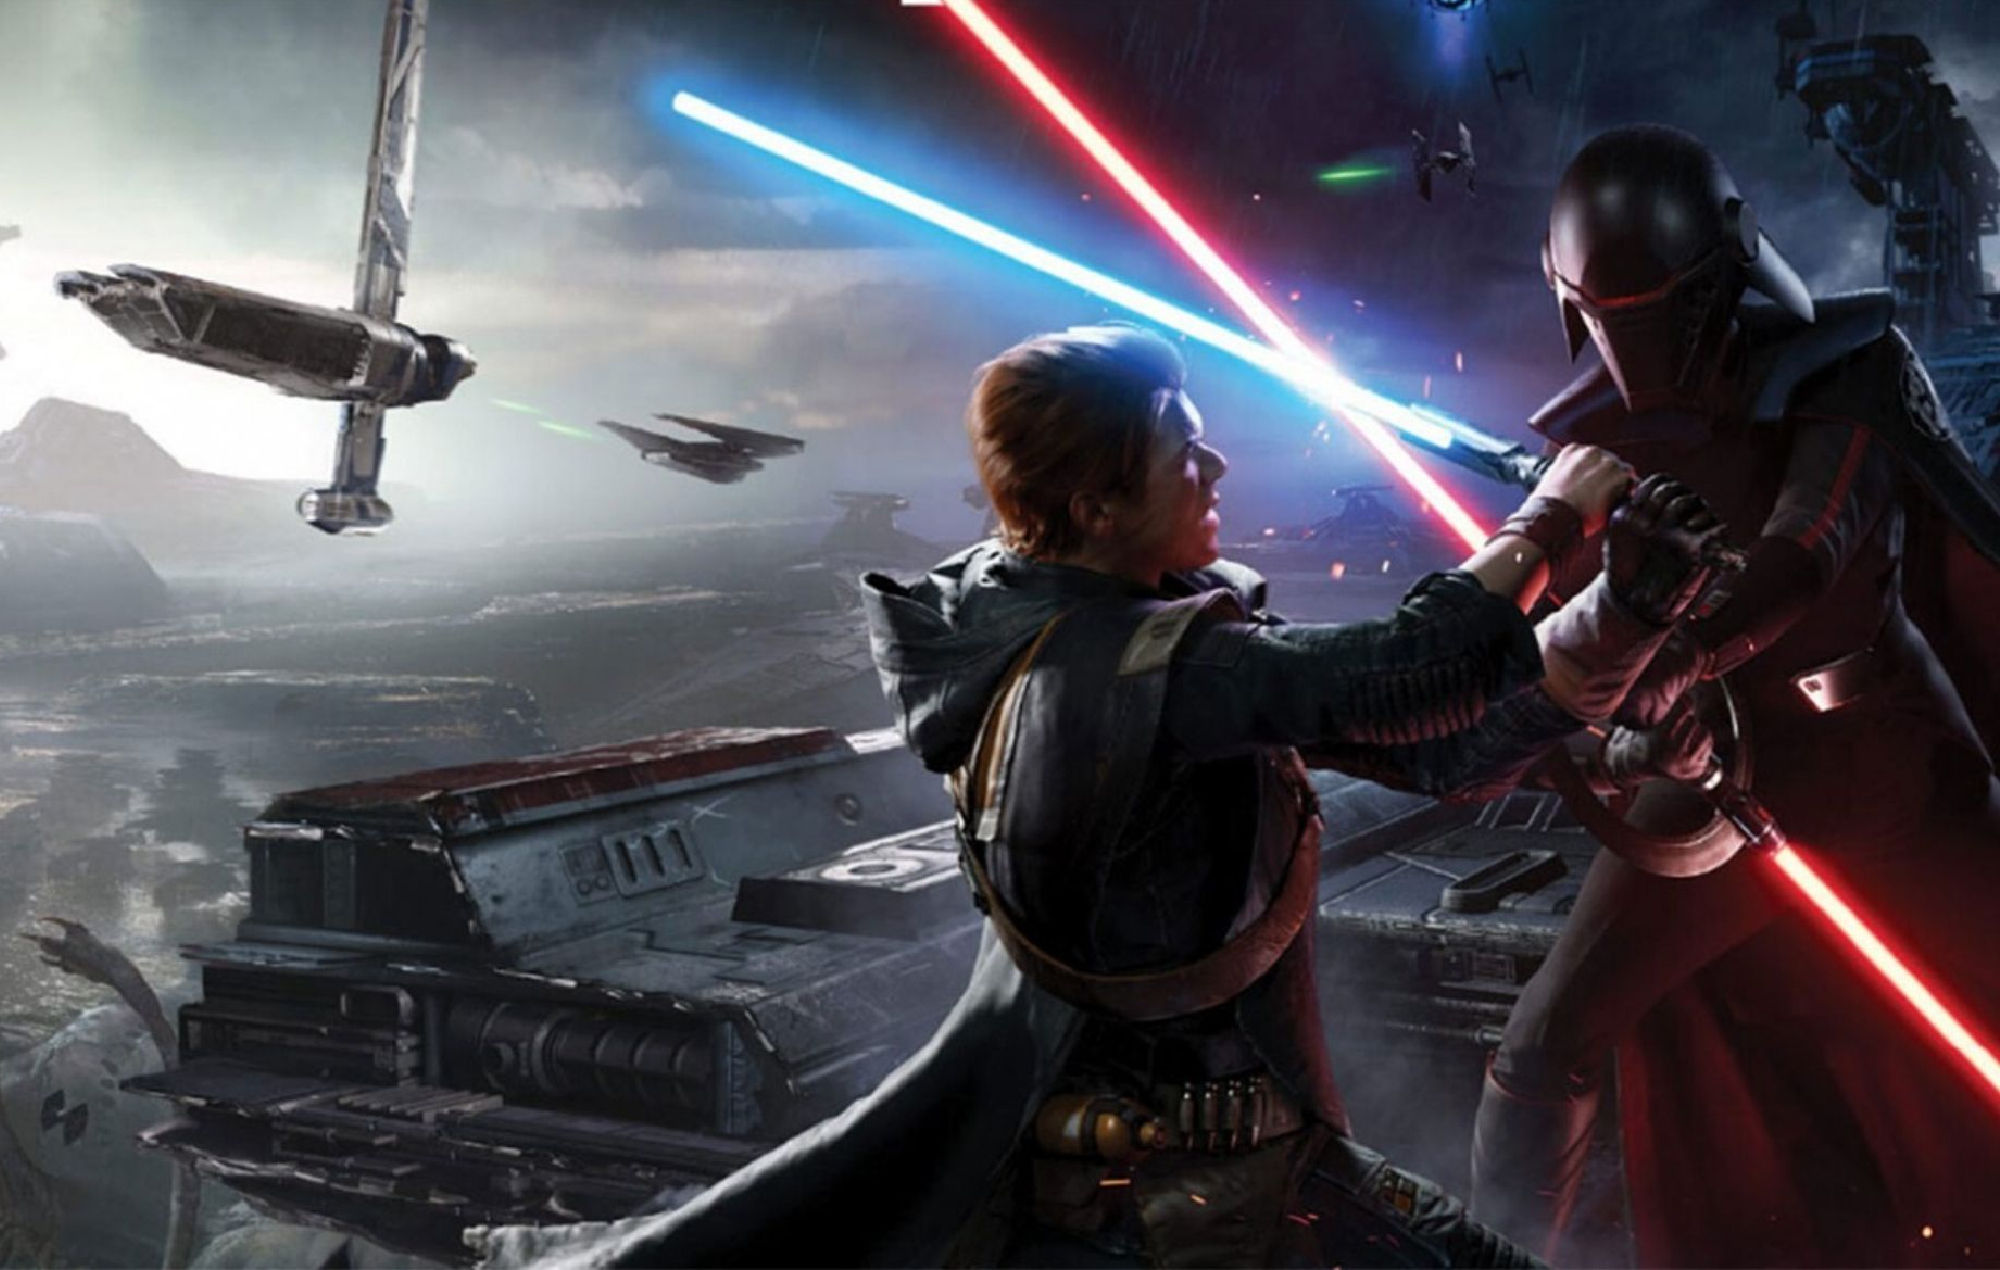 FREE HORROR star-wars-jed-fallen-order-credit-ea@2000x1270 Top 10 Games on Xbox Game Pass for PC